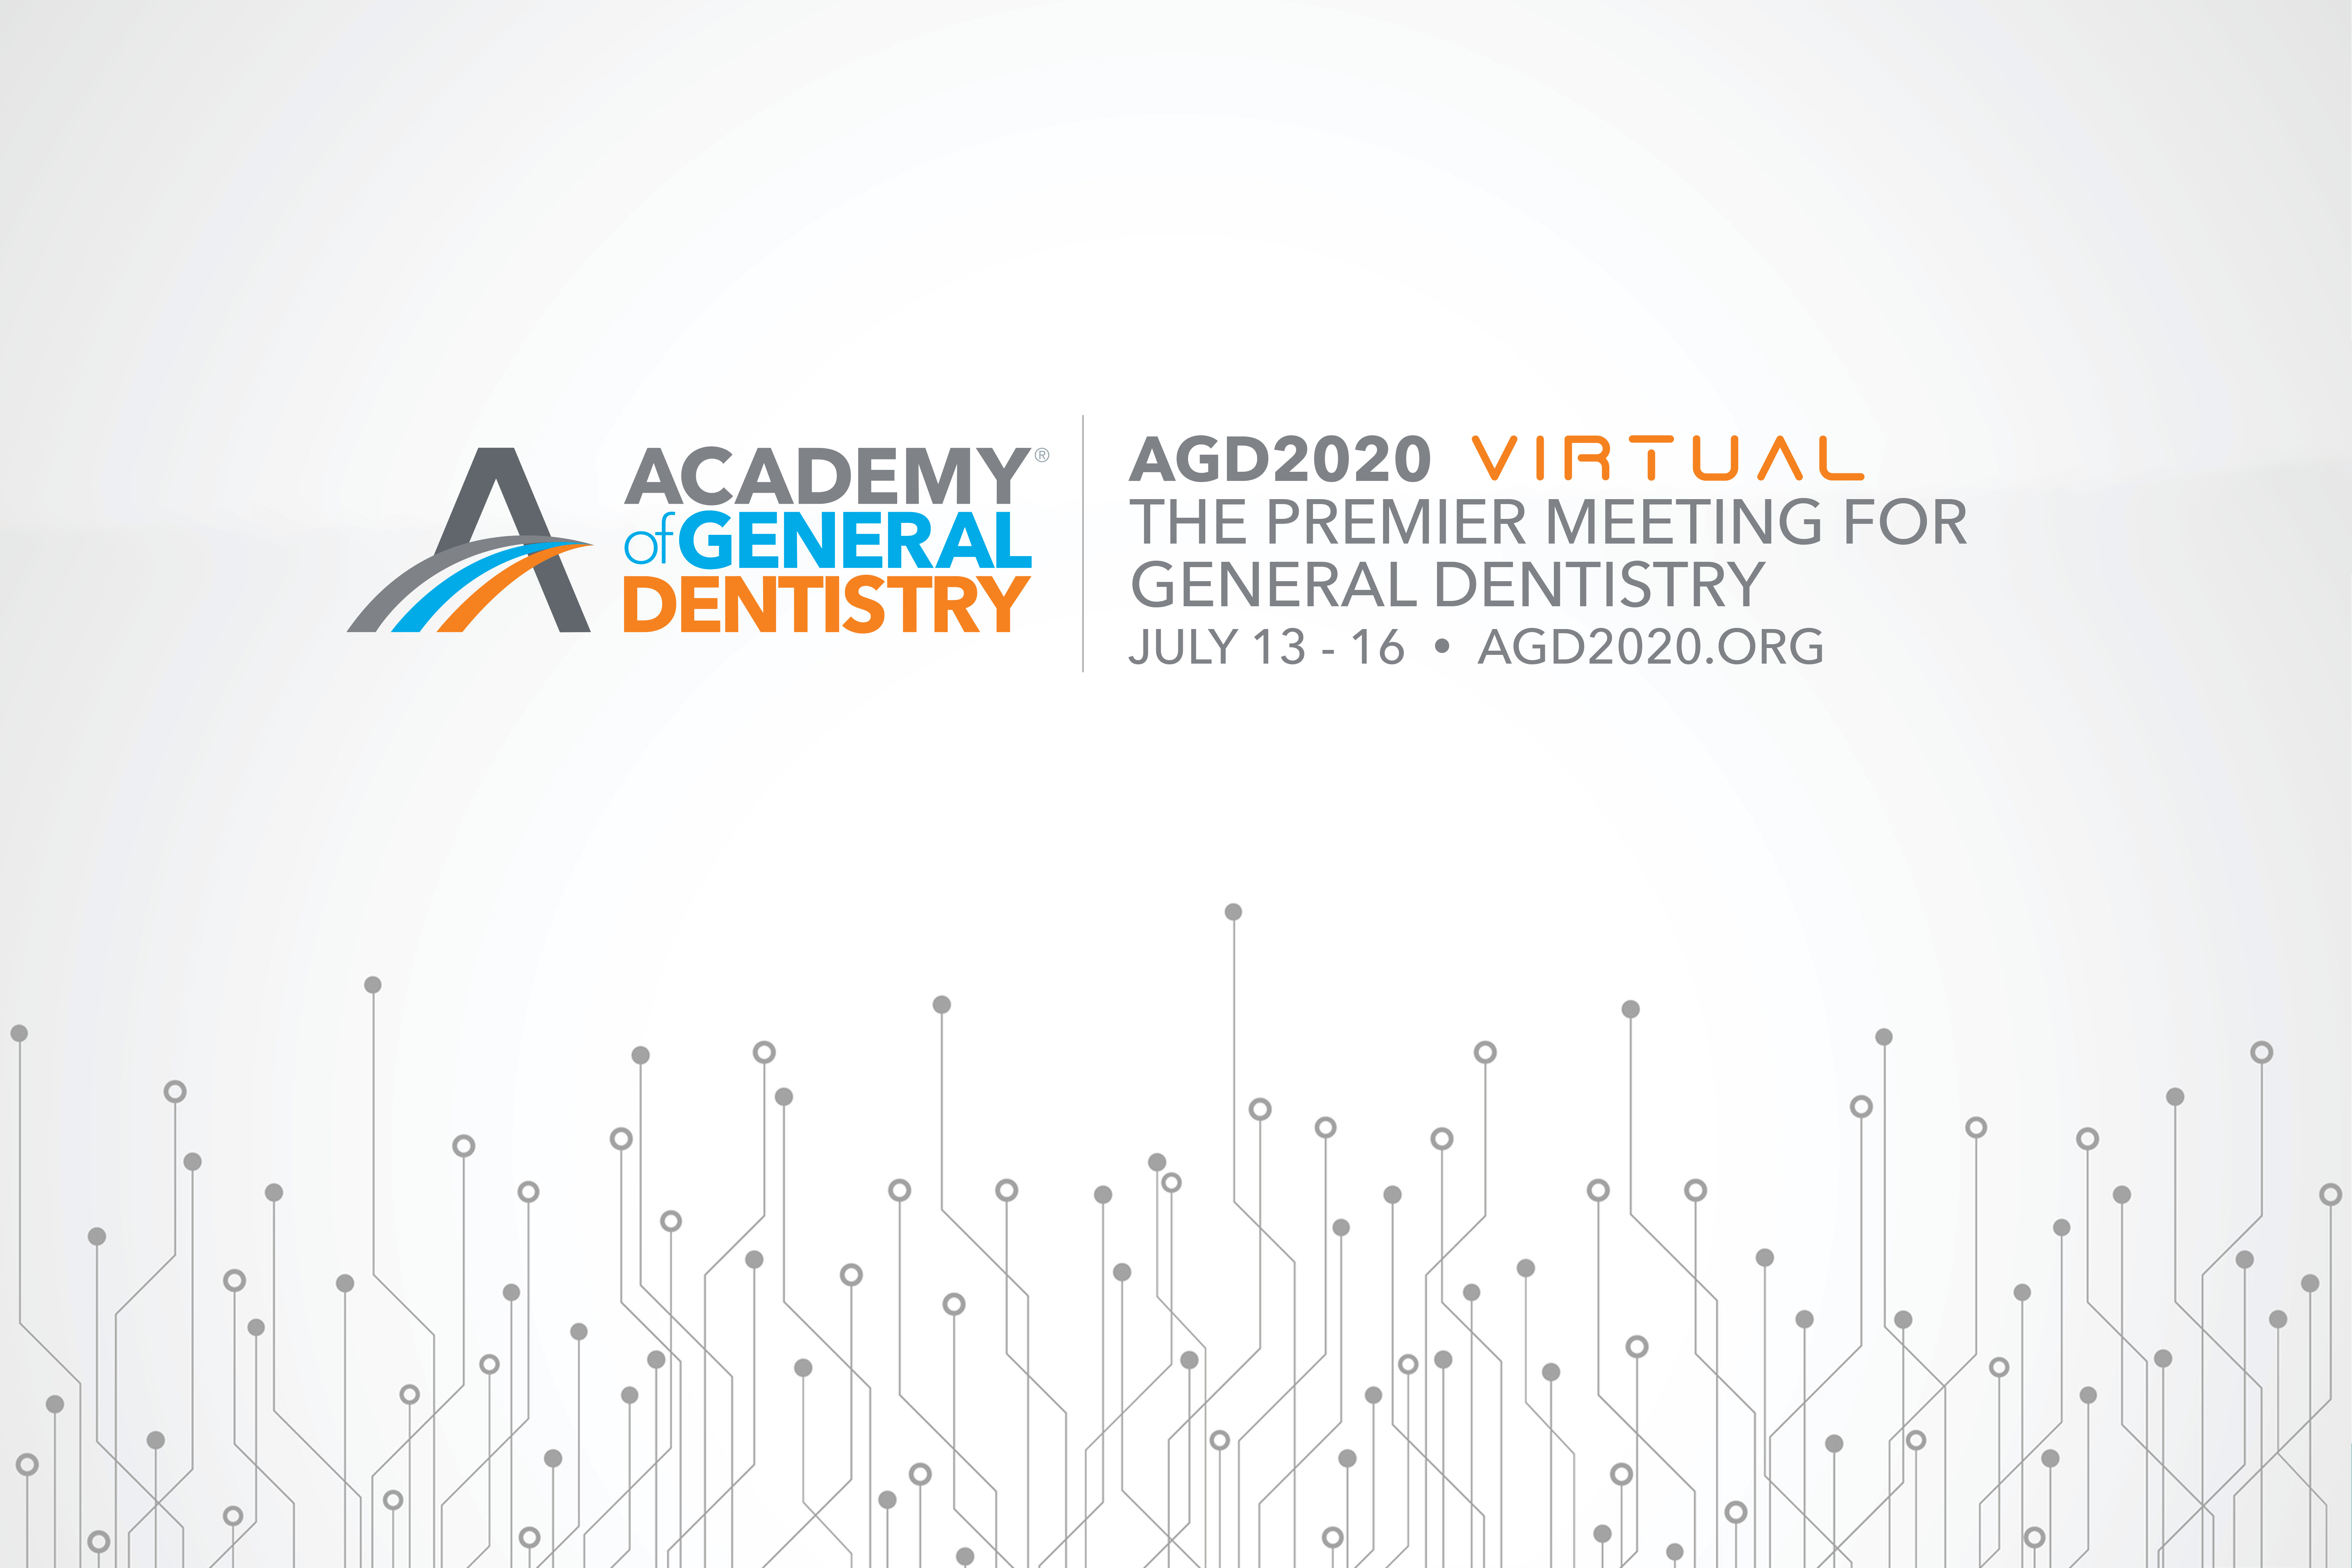 AGD2020 Is Now Virtual